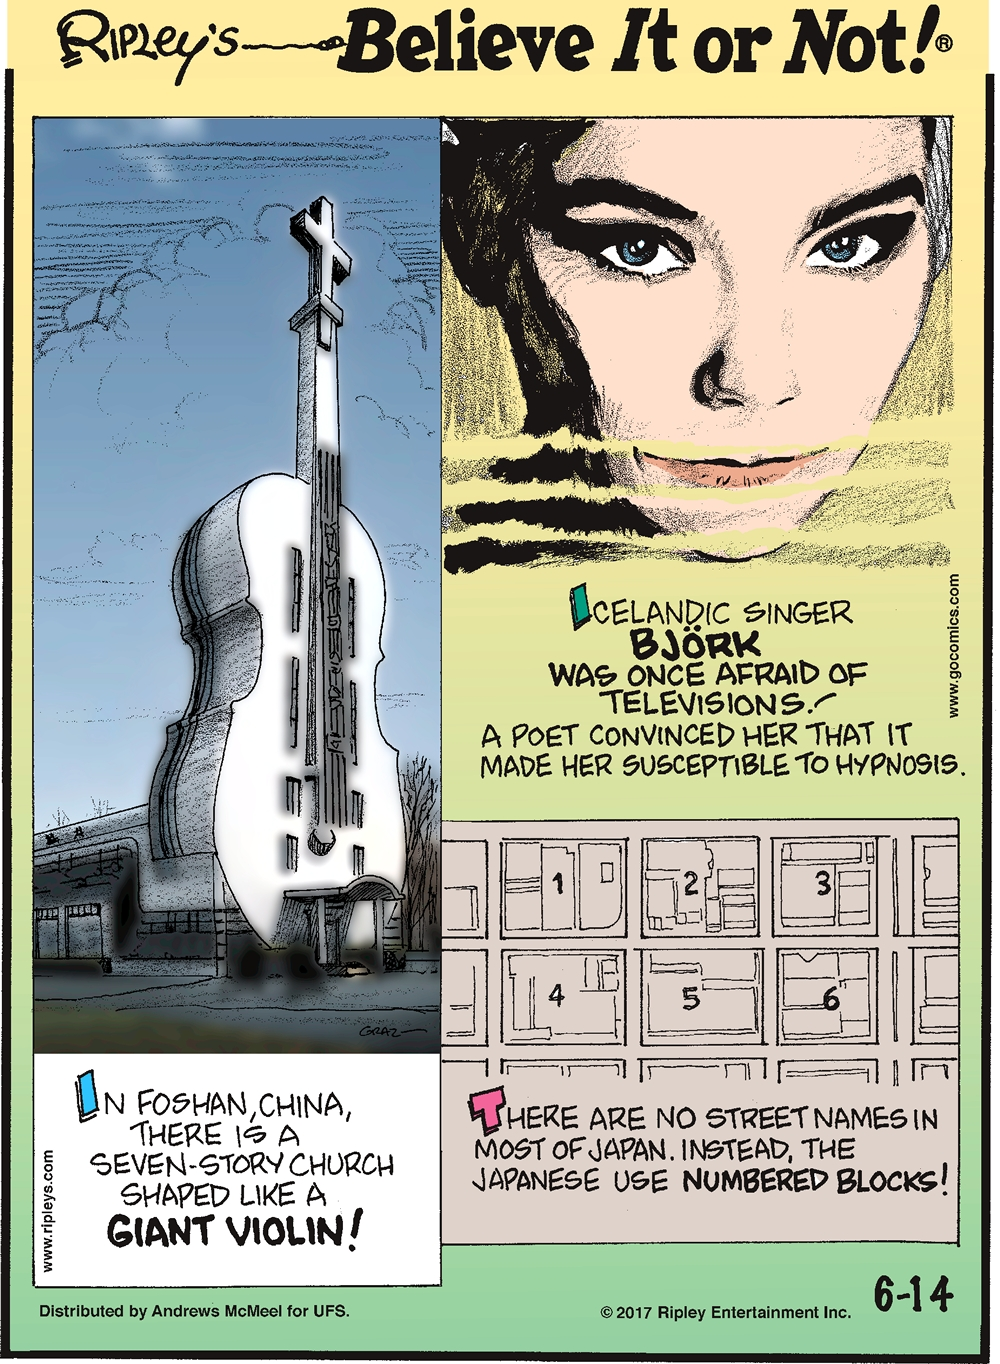 Icelandic singer Bjork was once afraid of televisions! A poet convinced her that it made her susceptible to hypnosis.--------------------- In Foshan, China, there is a seven-story church shaped like a giant violin!------------------------ There are no street names in most of Japan. Instead, the Japanese use numbered blocks!